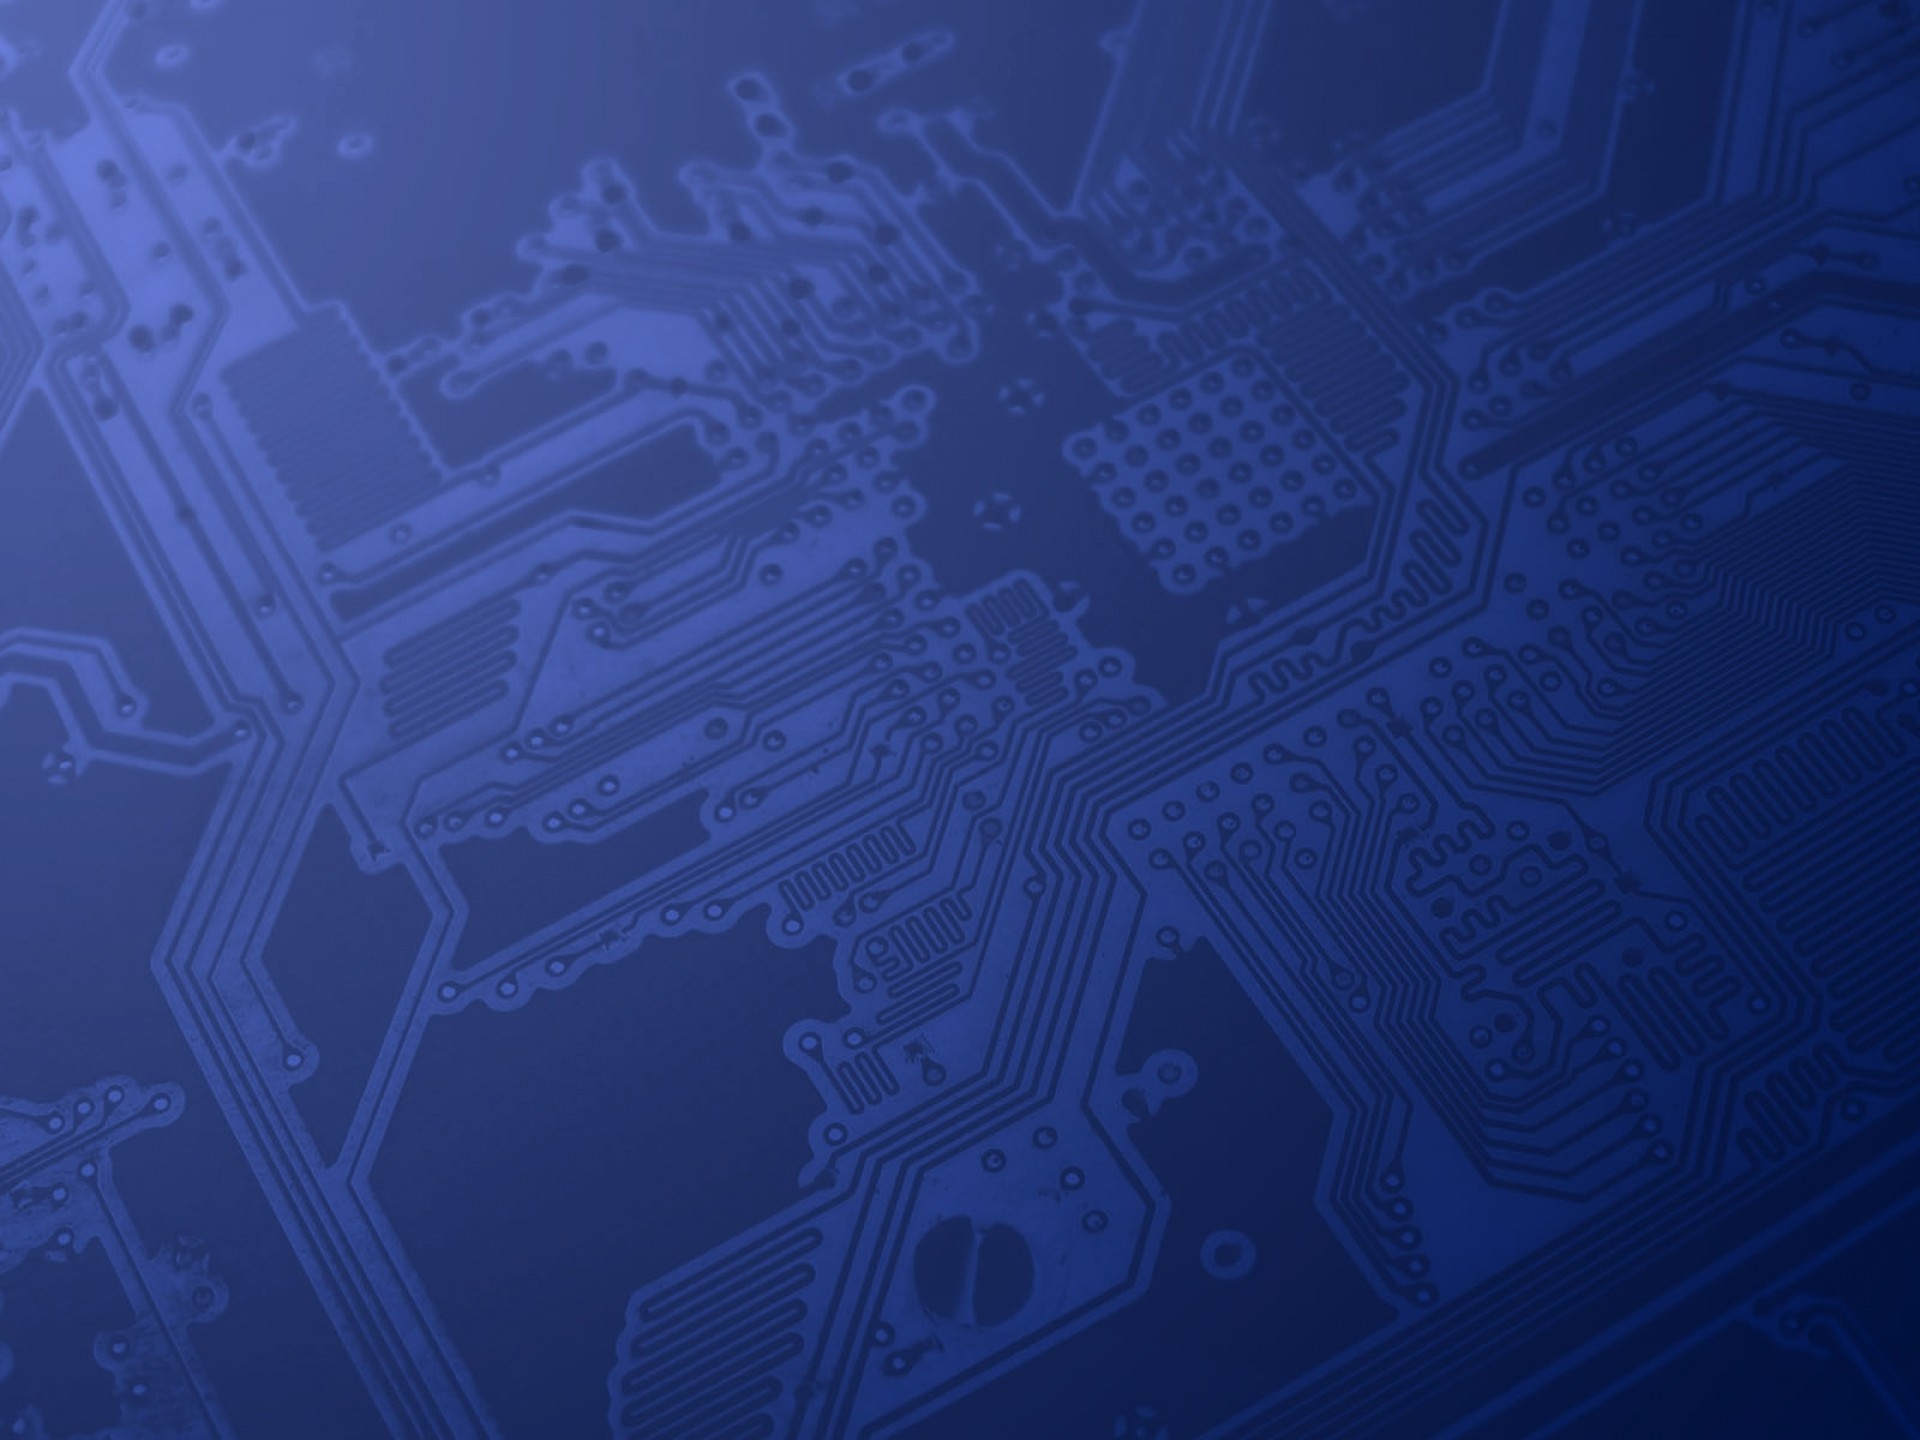 Circuit Board Wallpapers Hd 63 Images Electronic Wallpaper 1920x1200 Arts 3840x1200 Sparkling Ways Android Apps On Google Play